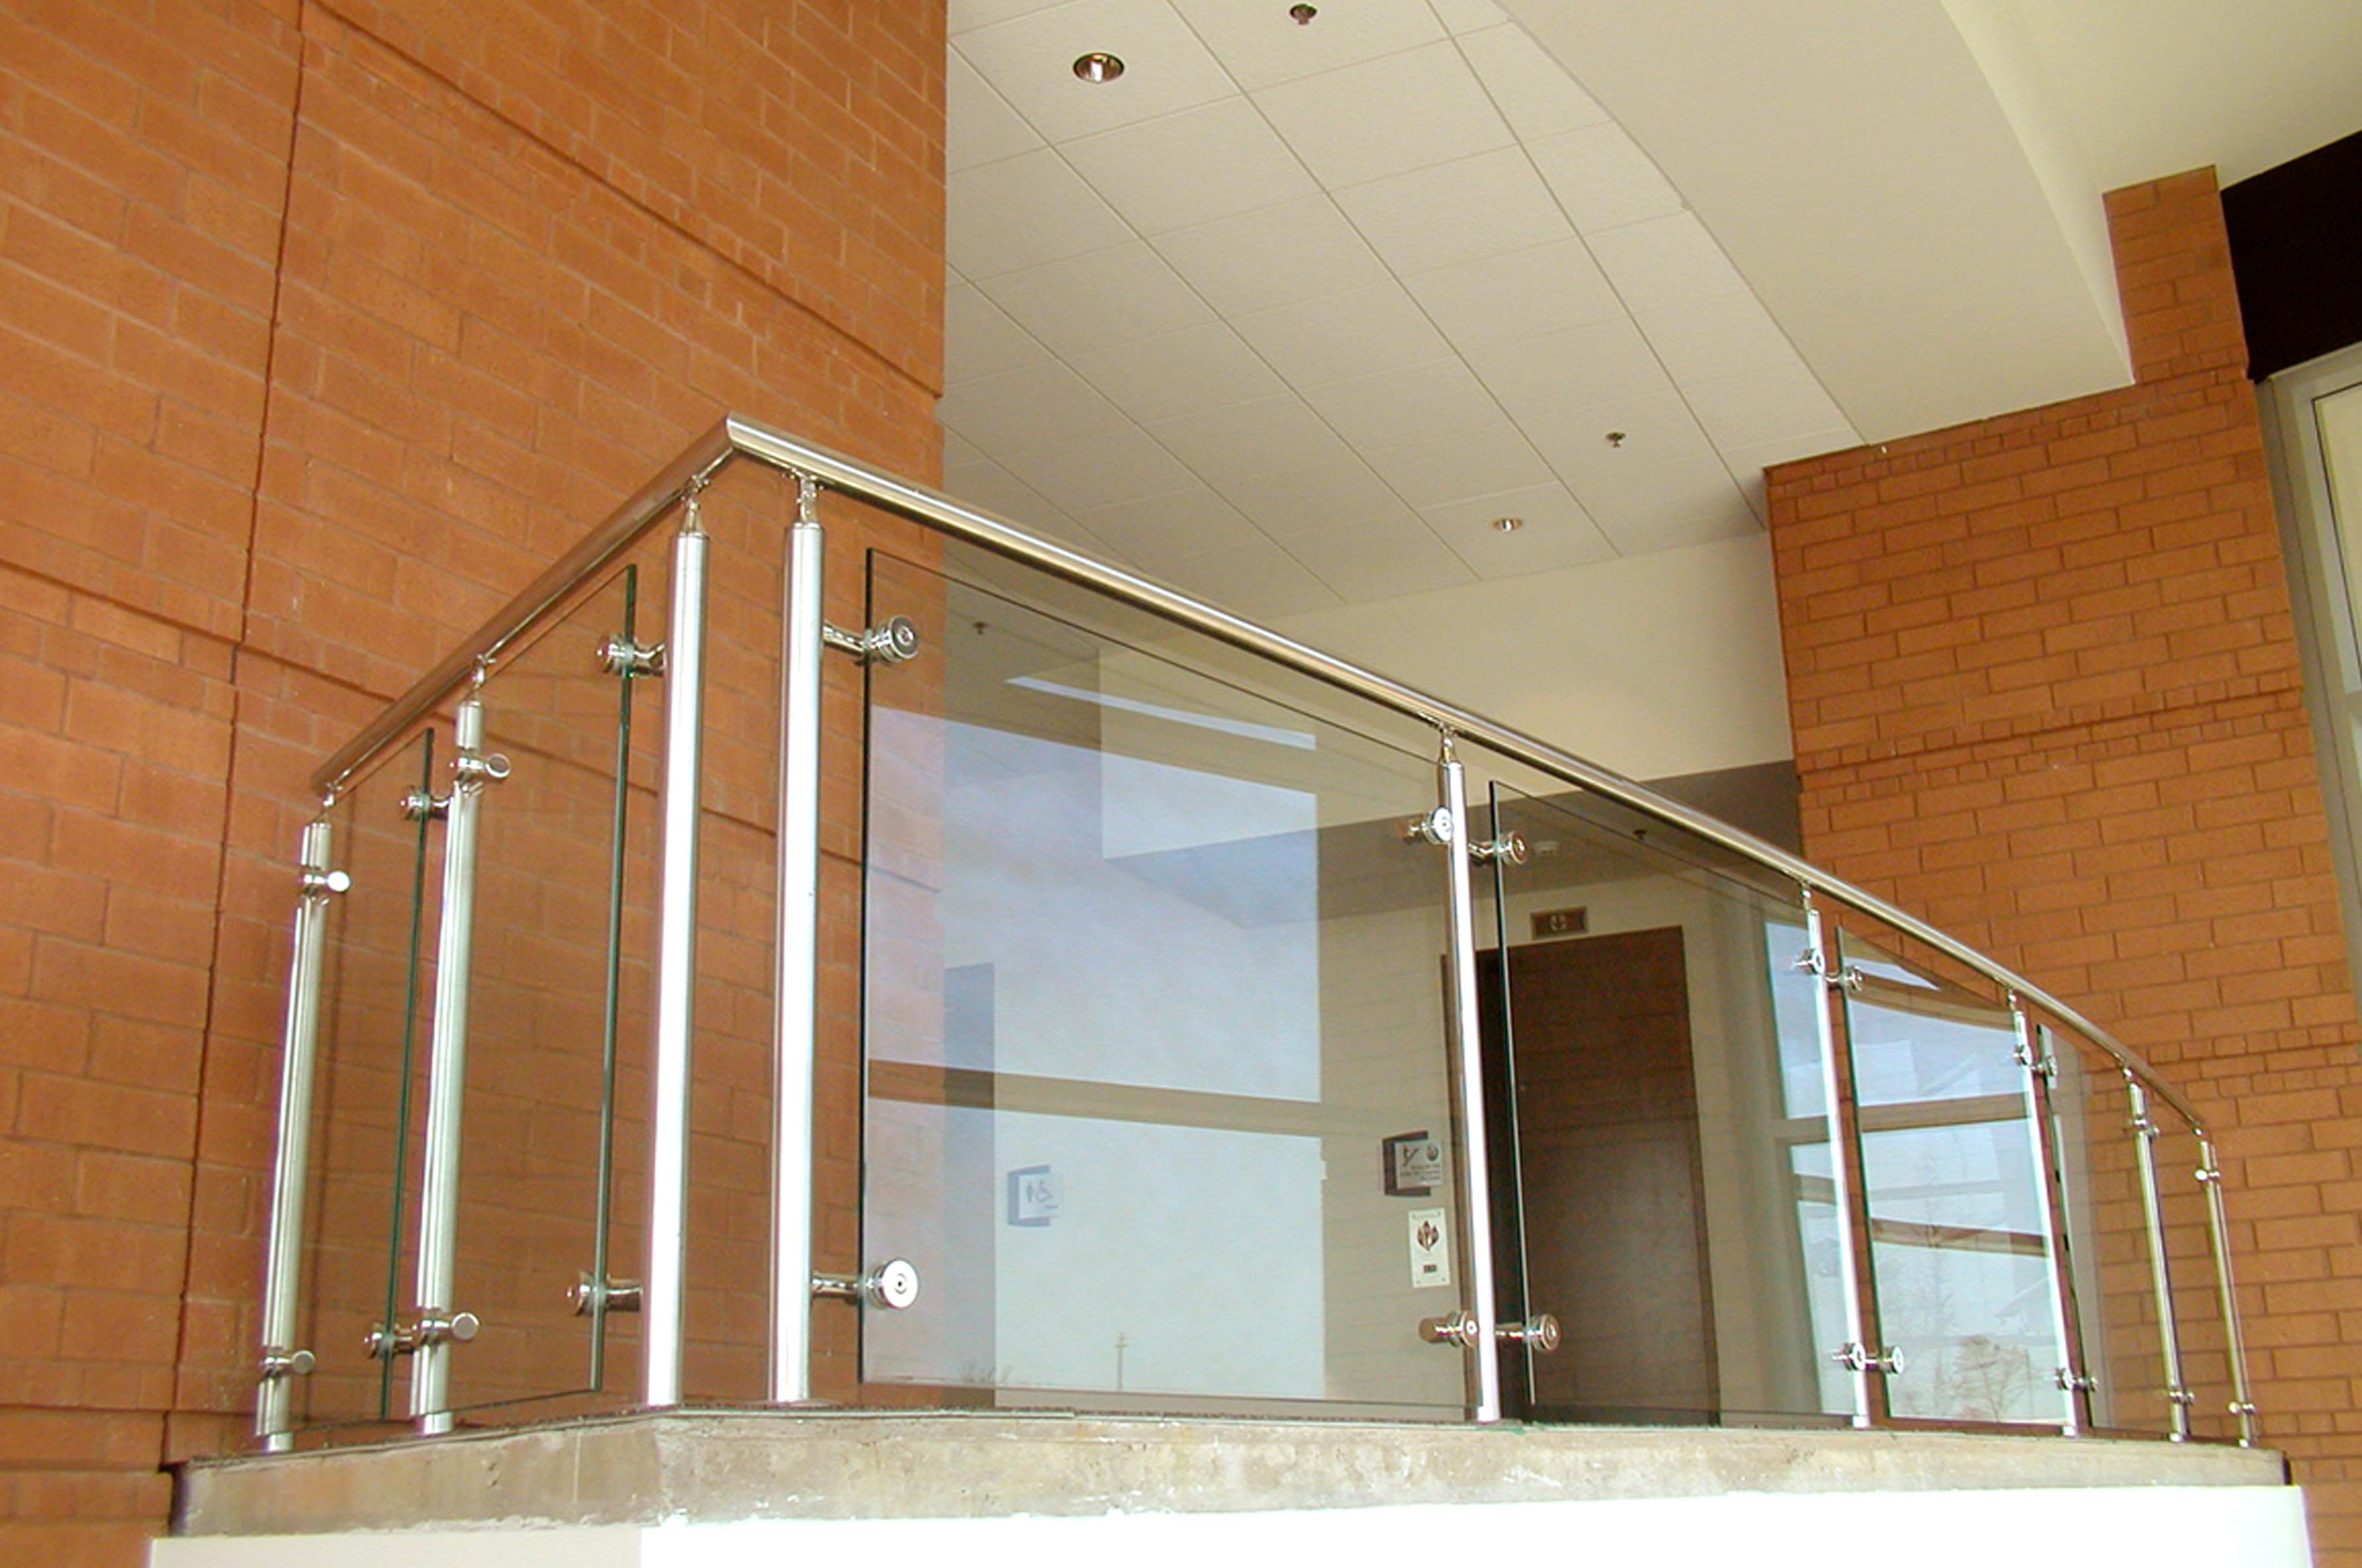 Balcony glass railing designs pictures images.